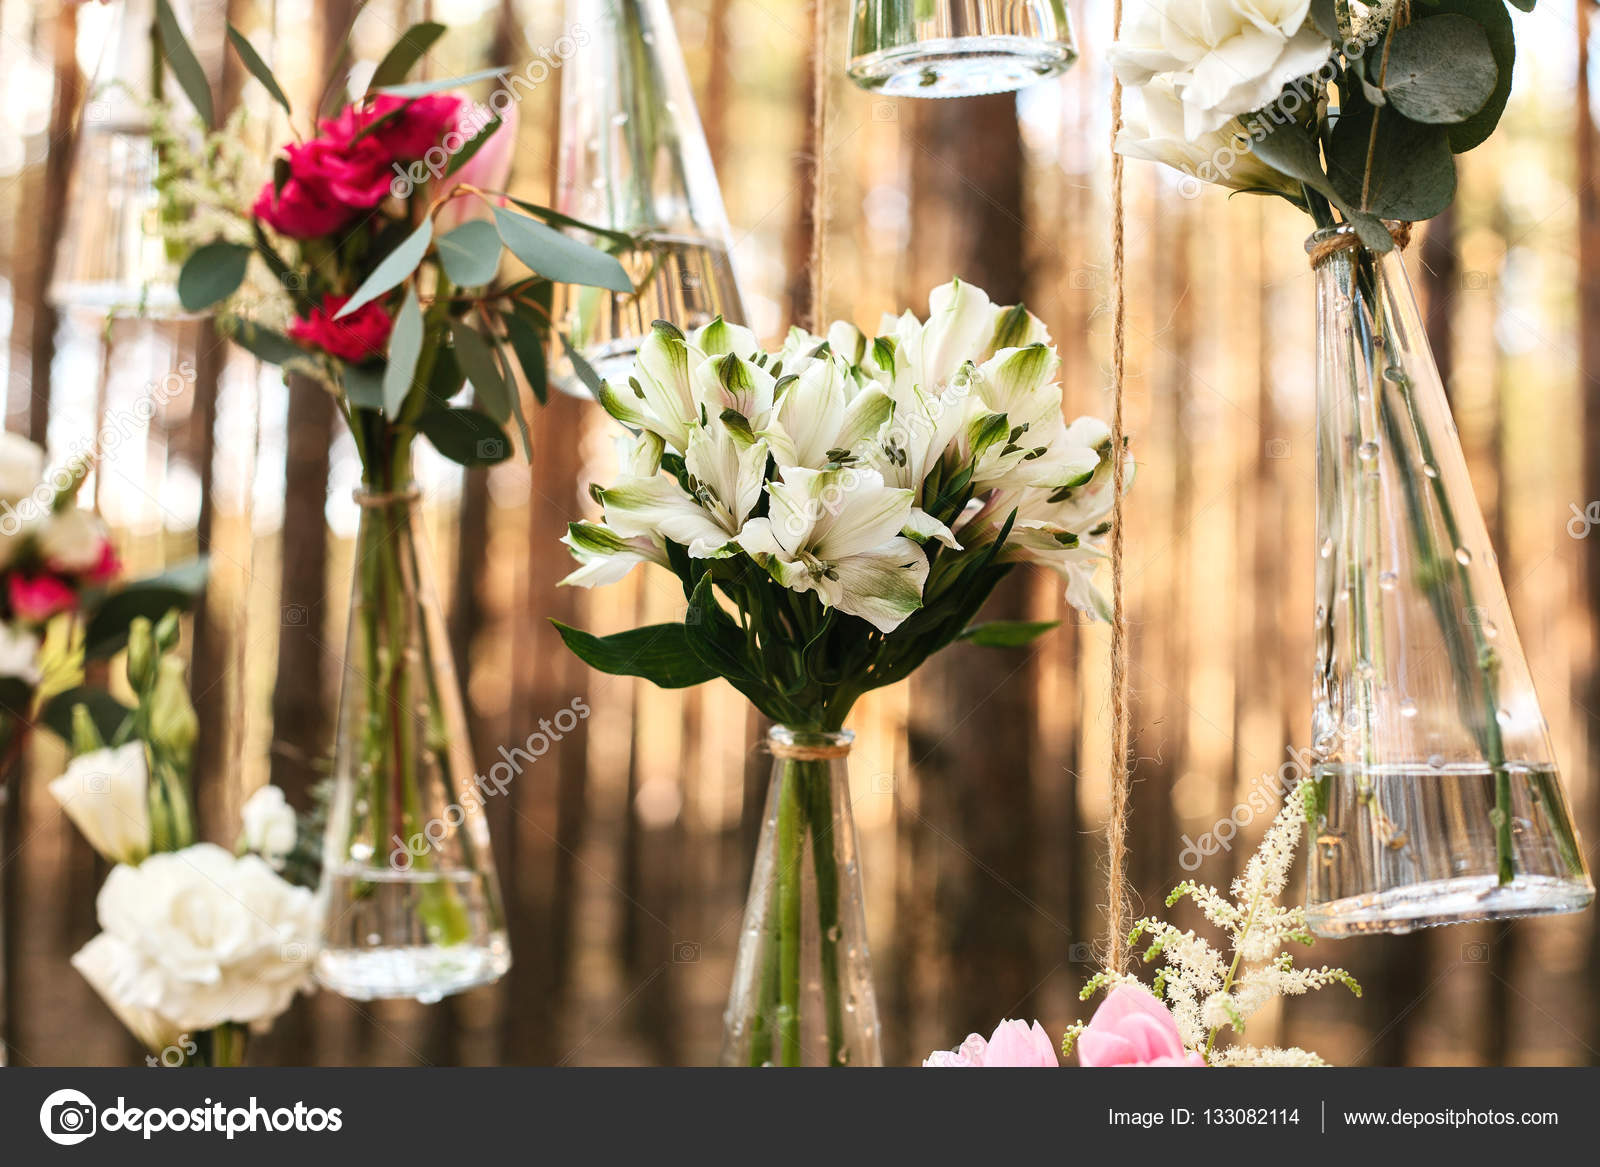 Wedding flowers decoration arch in the forest the idea of a wedding wedding flowers decoration arch in the forest the idea of a wedding flower decoration wedding concept in nature foto de infanzail junglespirit Gallery